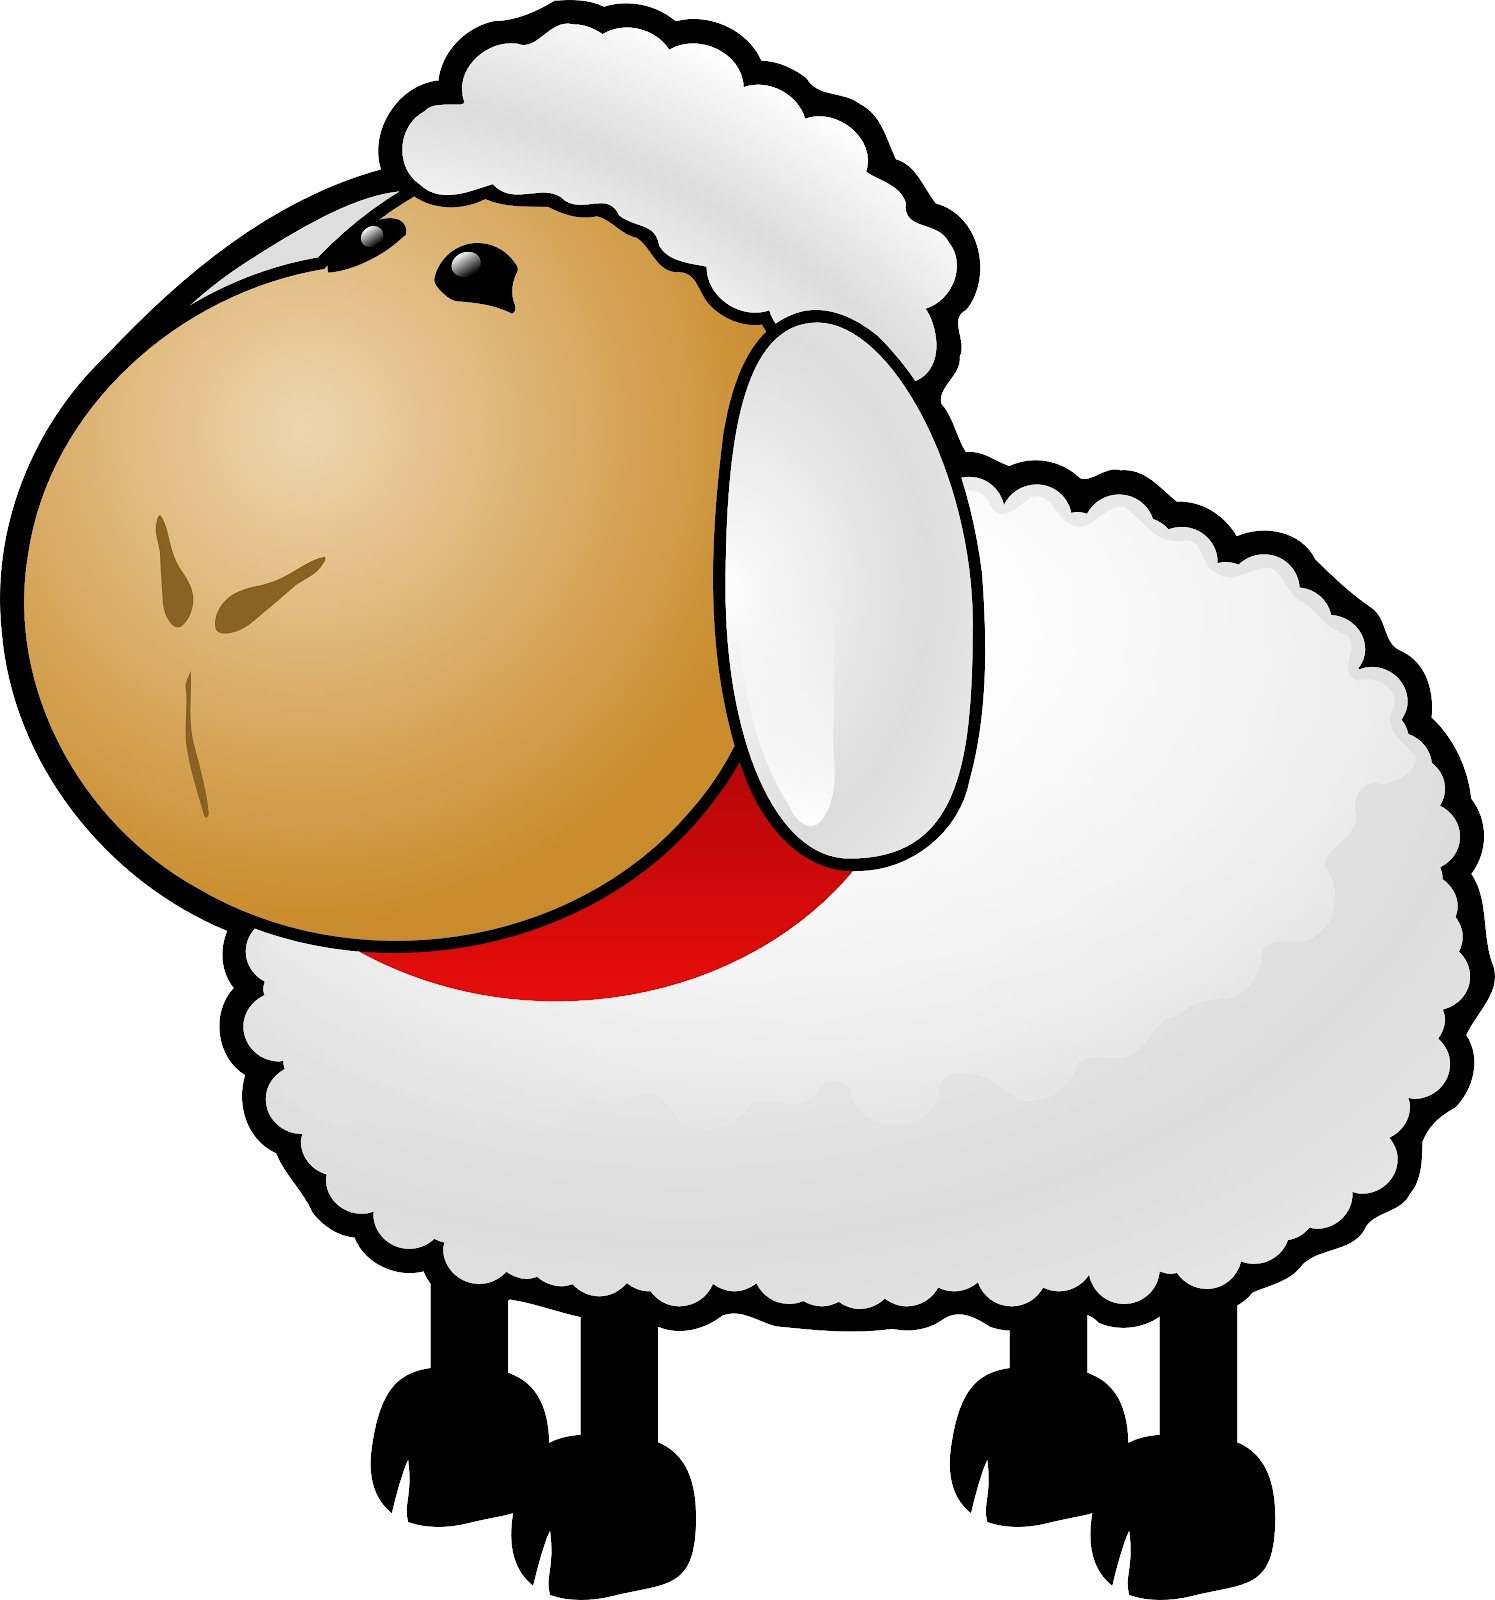 Free Farm Animal Pictures, Download Free Clip Art, Free Clip Art On - Free Printable Farm Animal Clipart